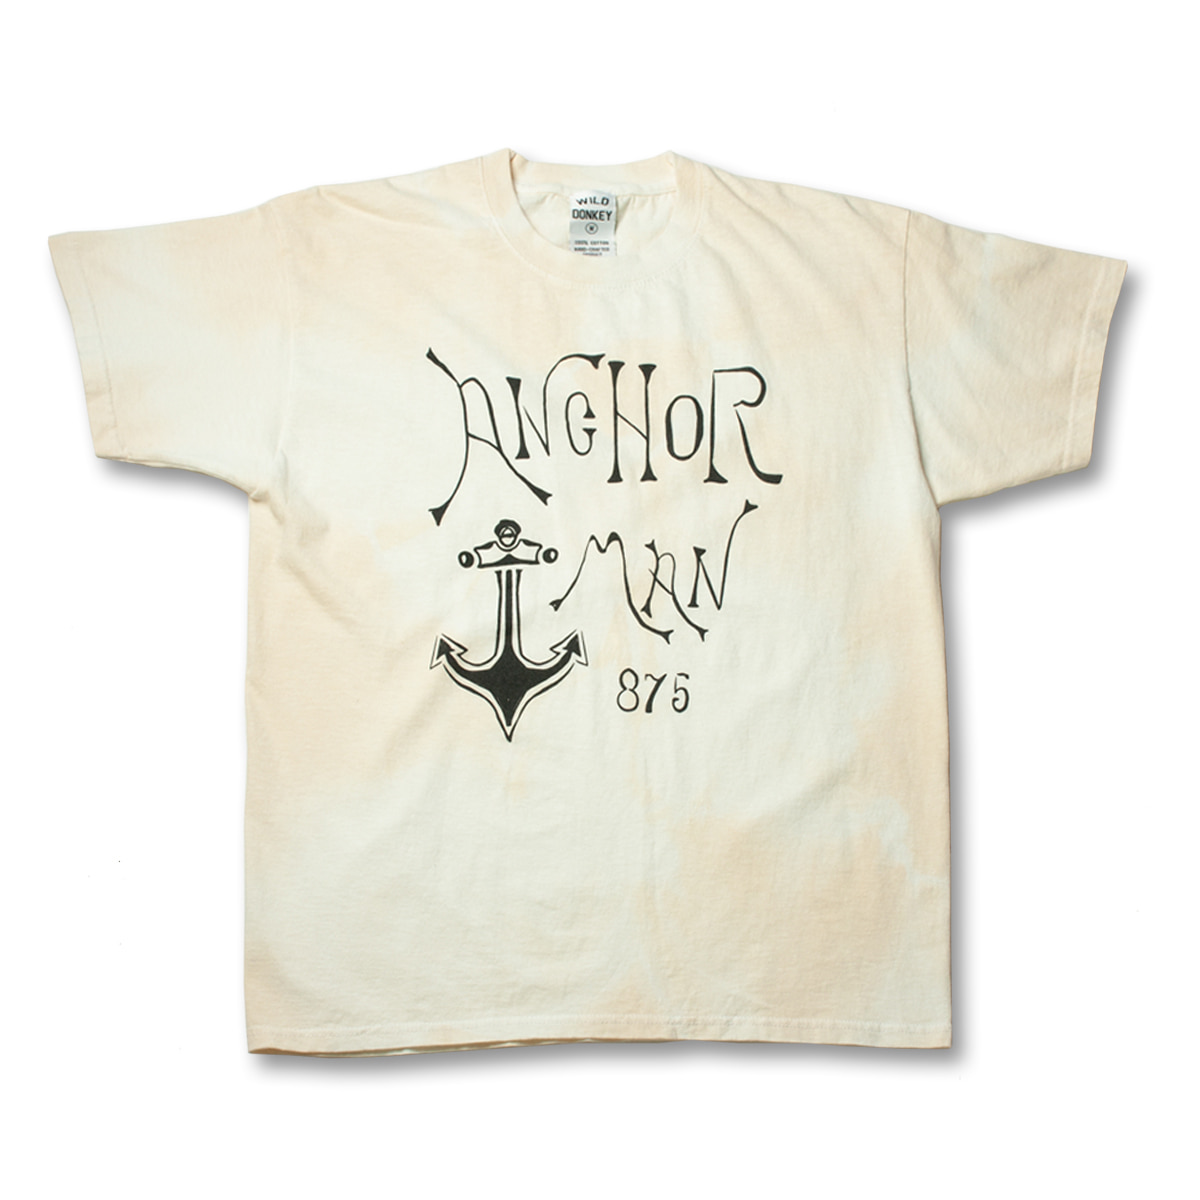 [WILD DONKEY] ANCHOR MAN 'YELLOW'